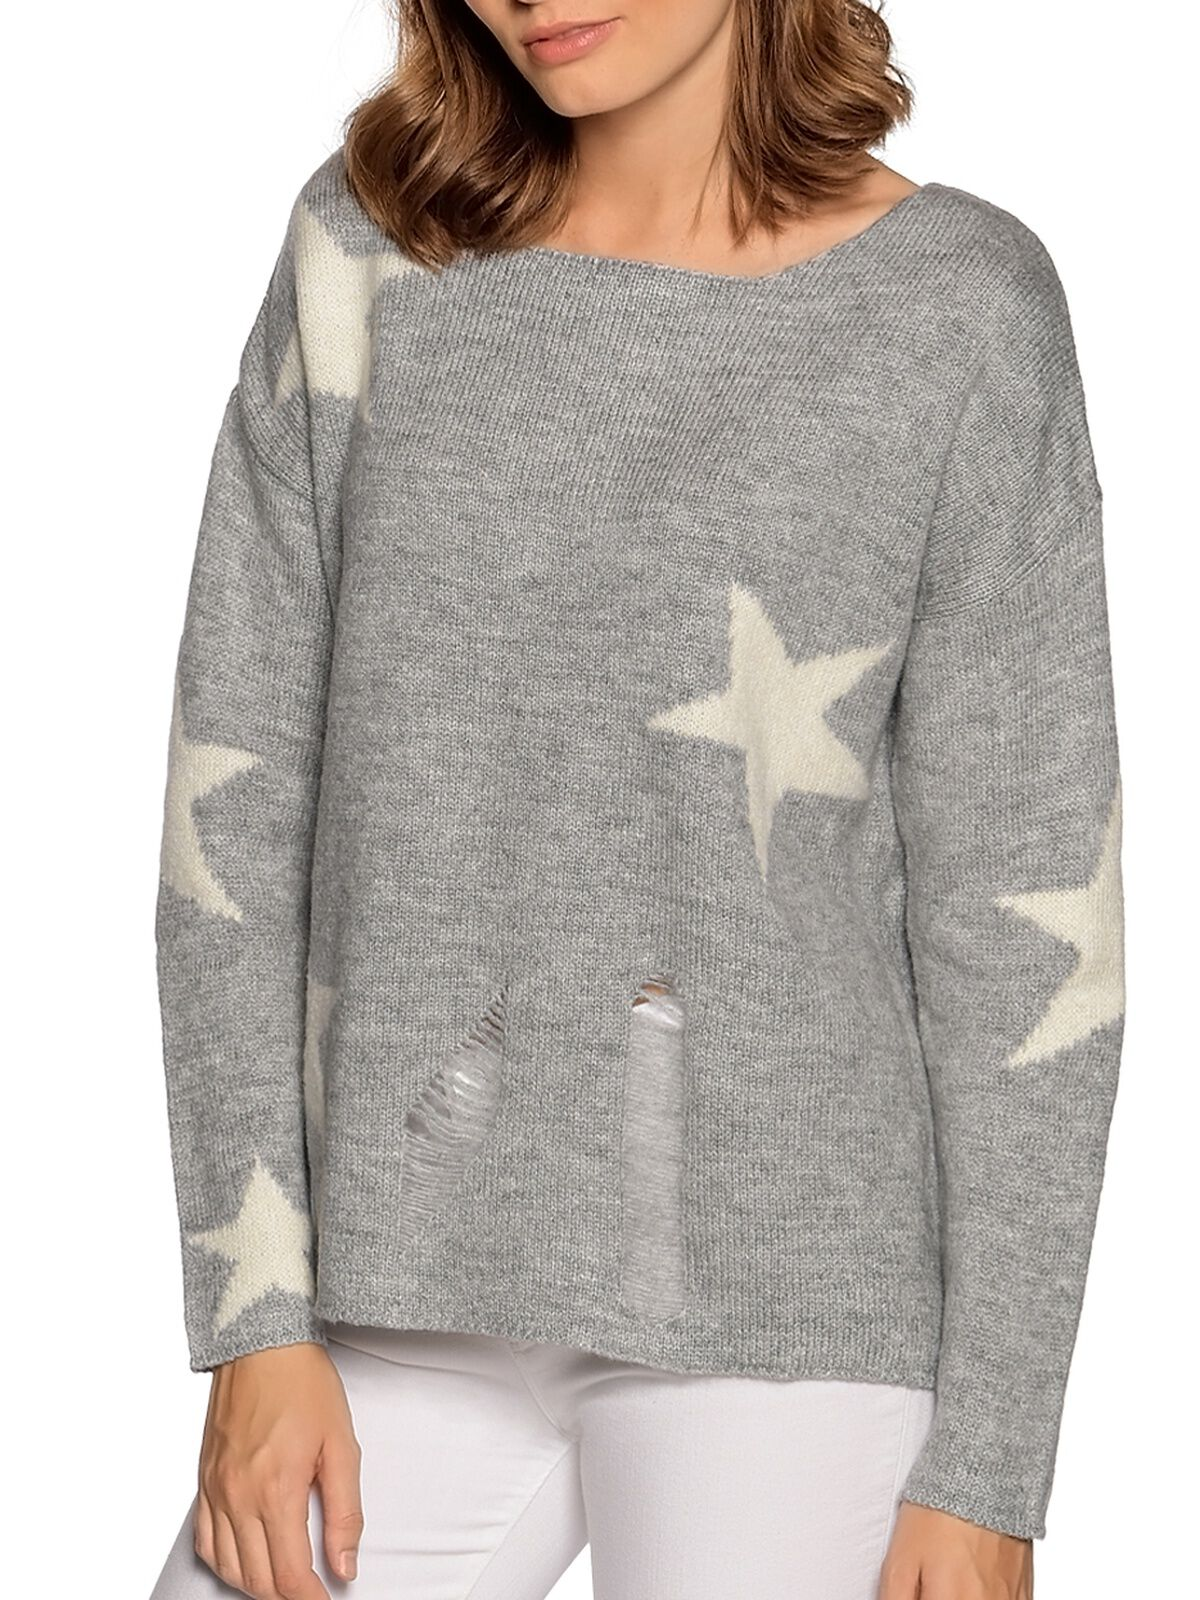 Replay Sweatshirt mit Destroyed Parts anthrazit   Dress for less